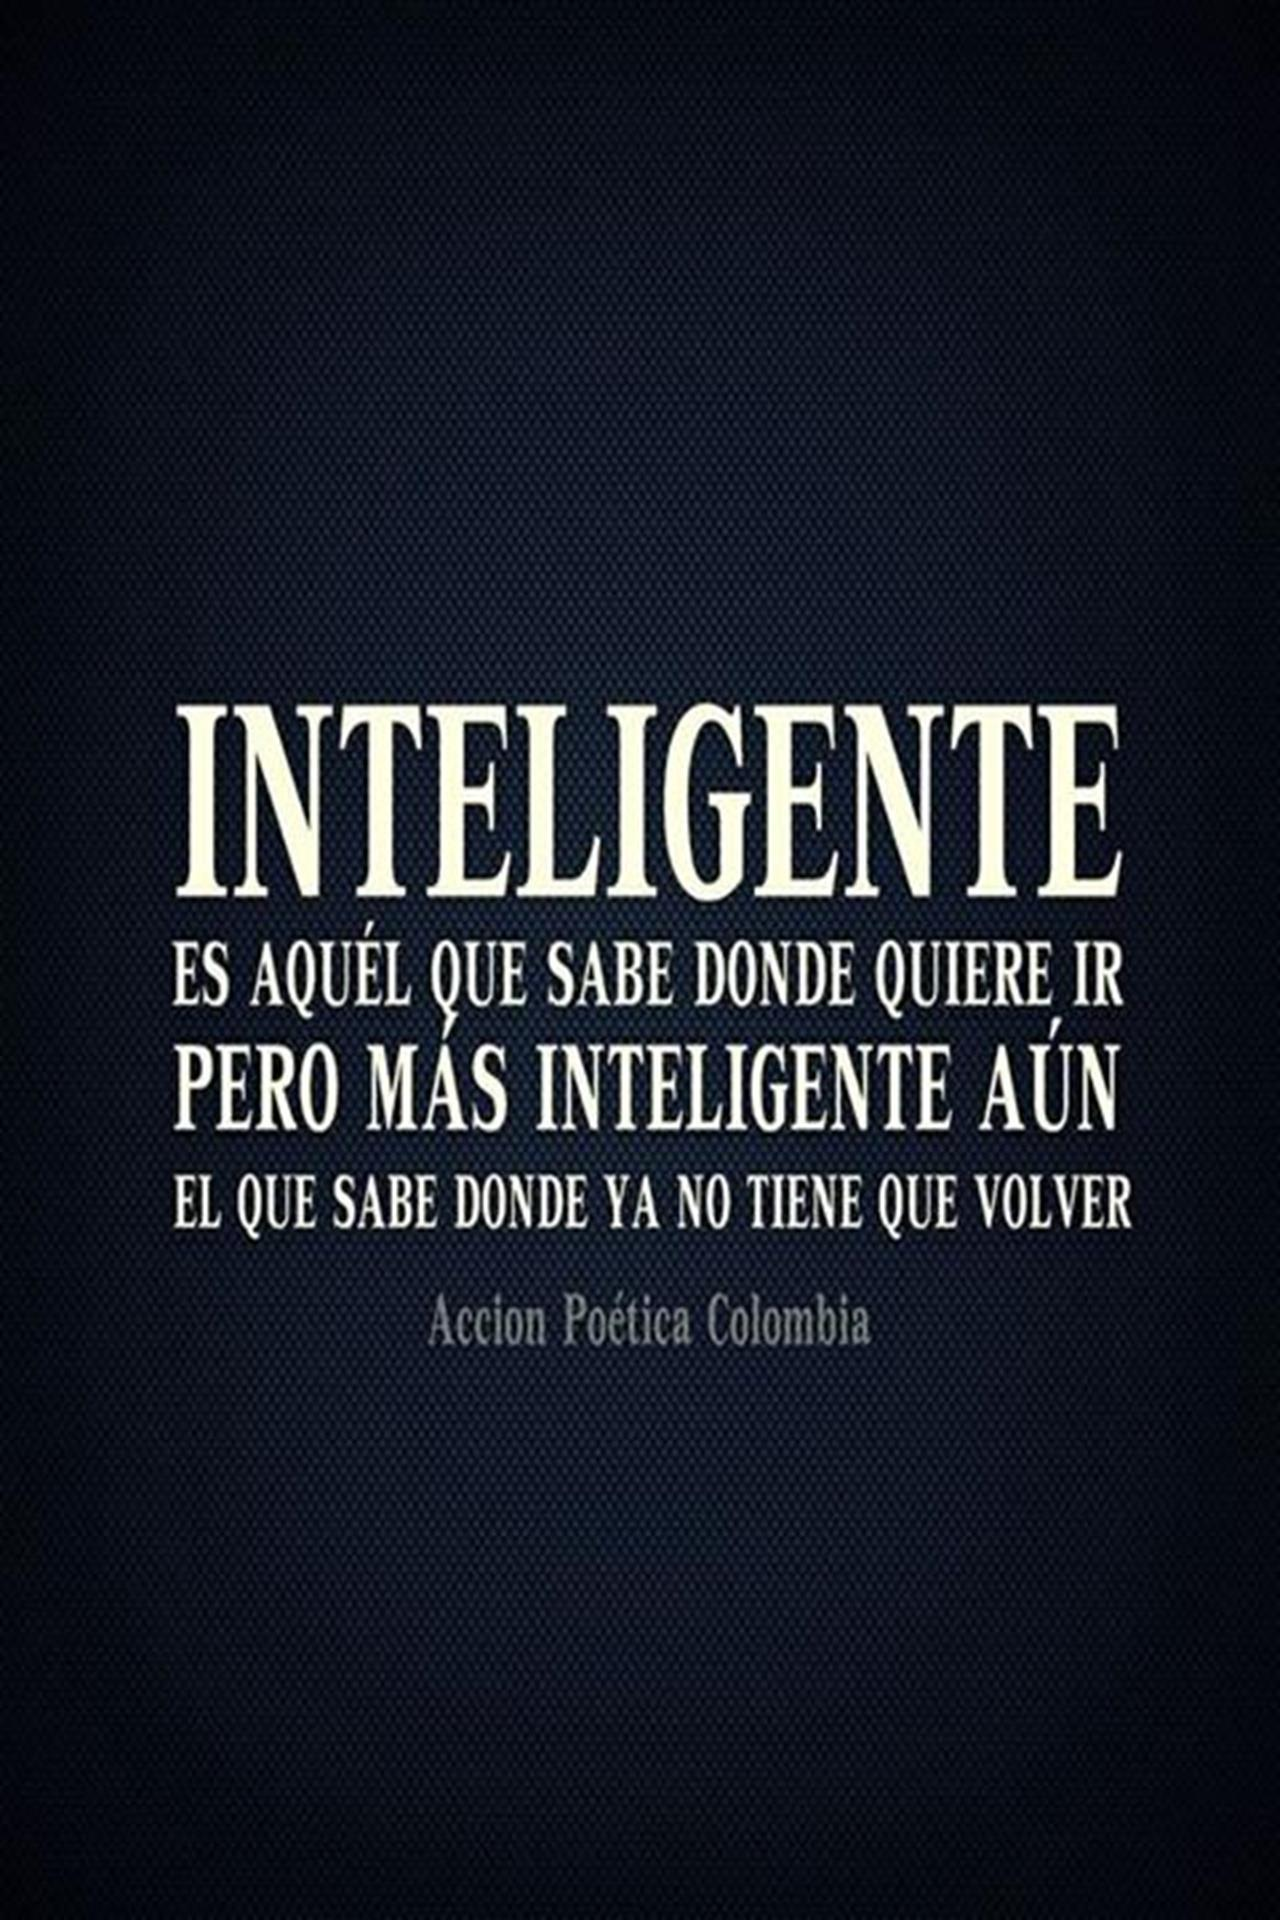 Frases Inteligentes En Español For Android Apk Download